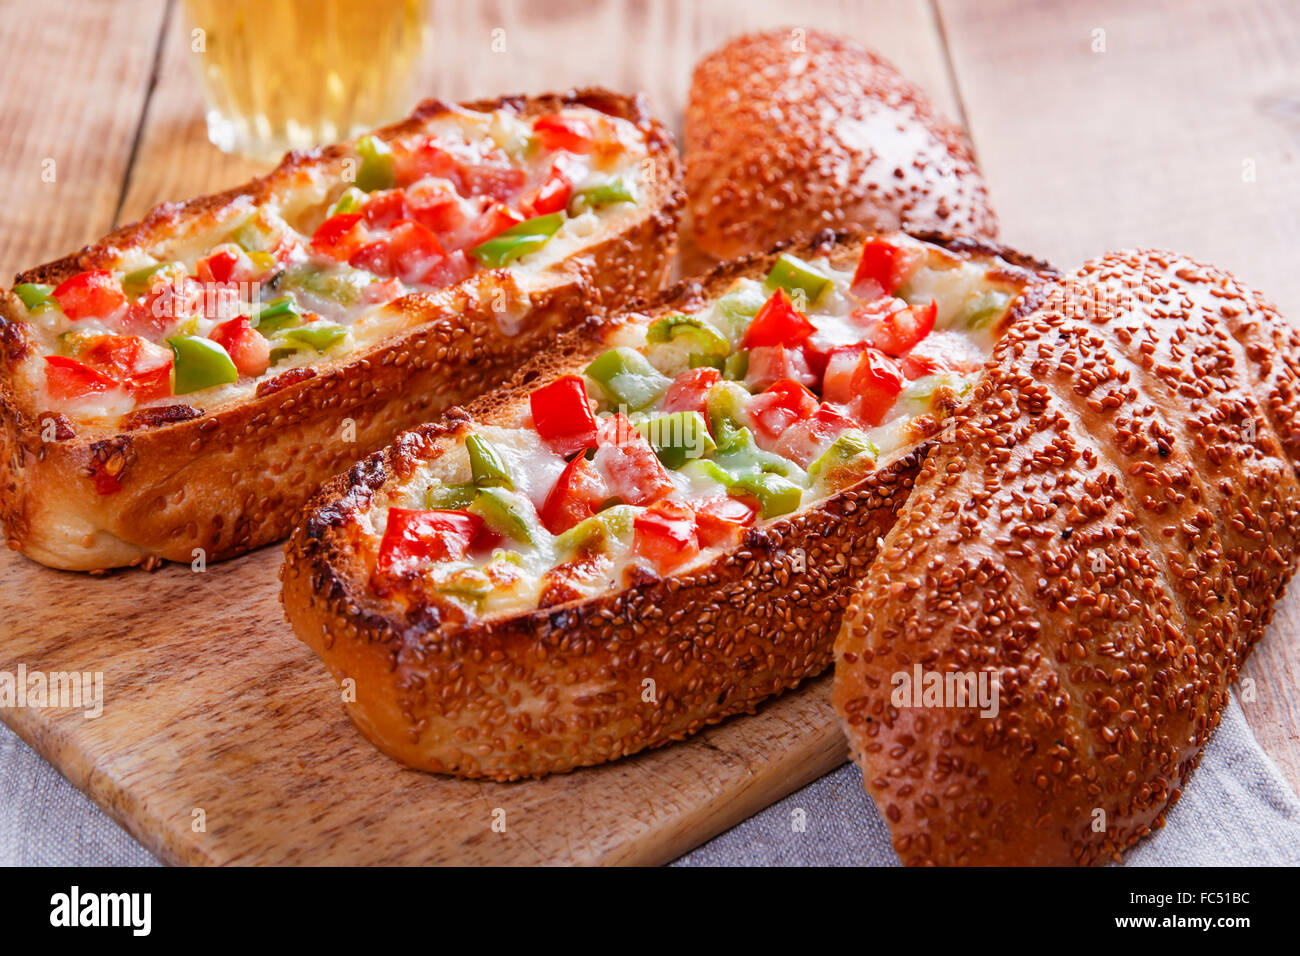 baked baguette stuffed with vegetables and cheese - Stock Image